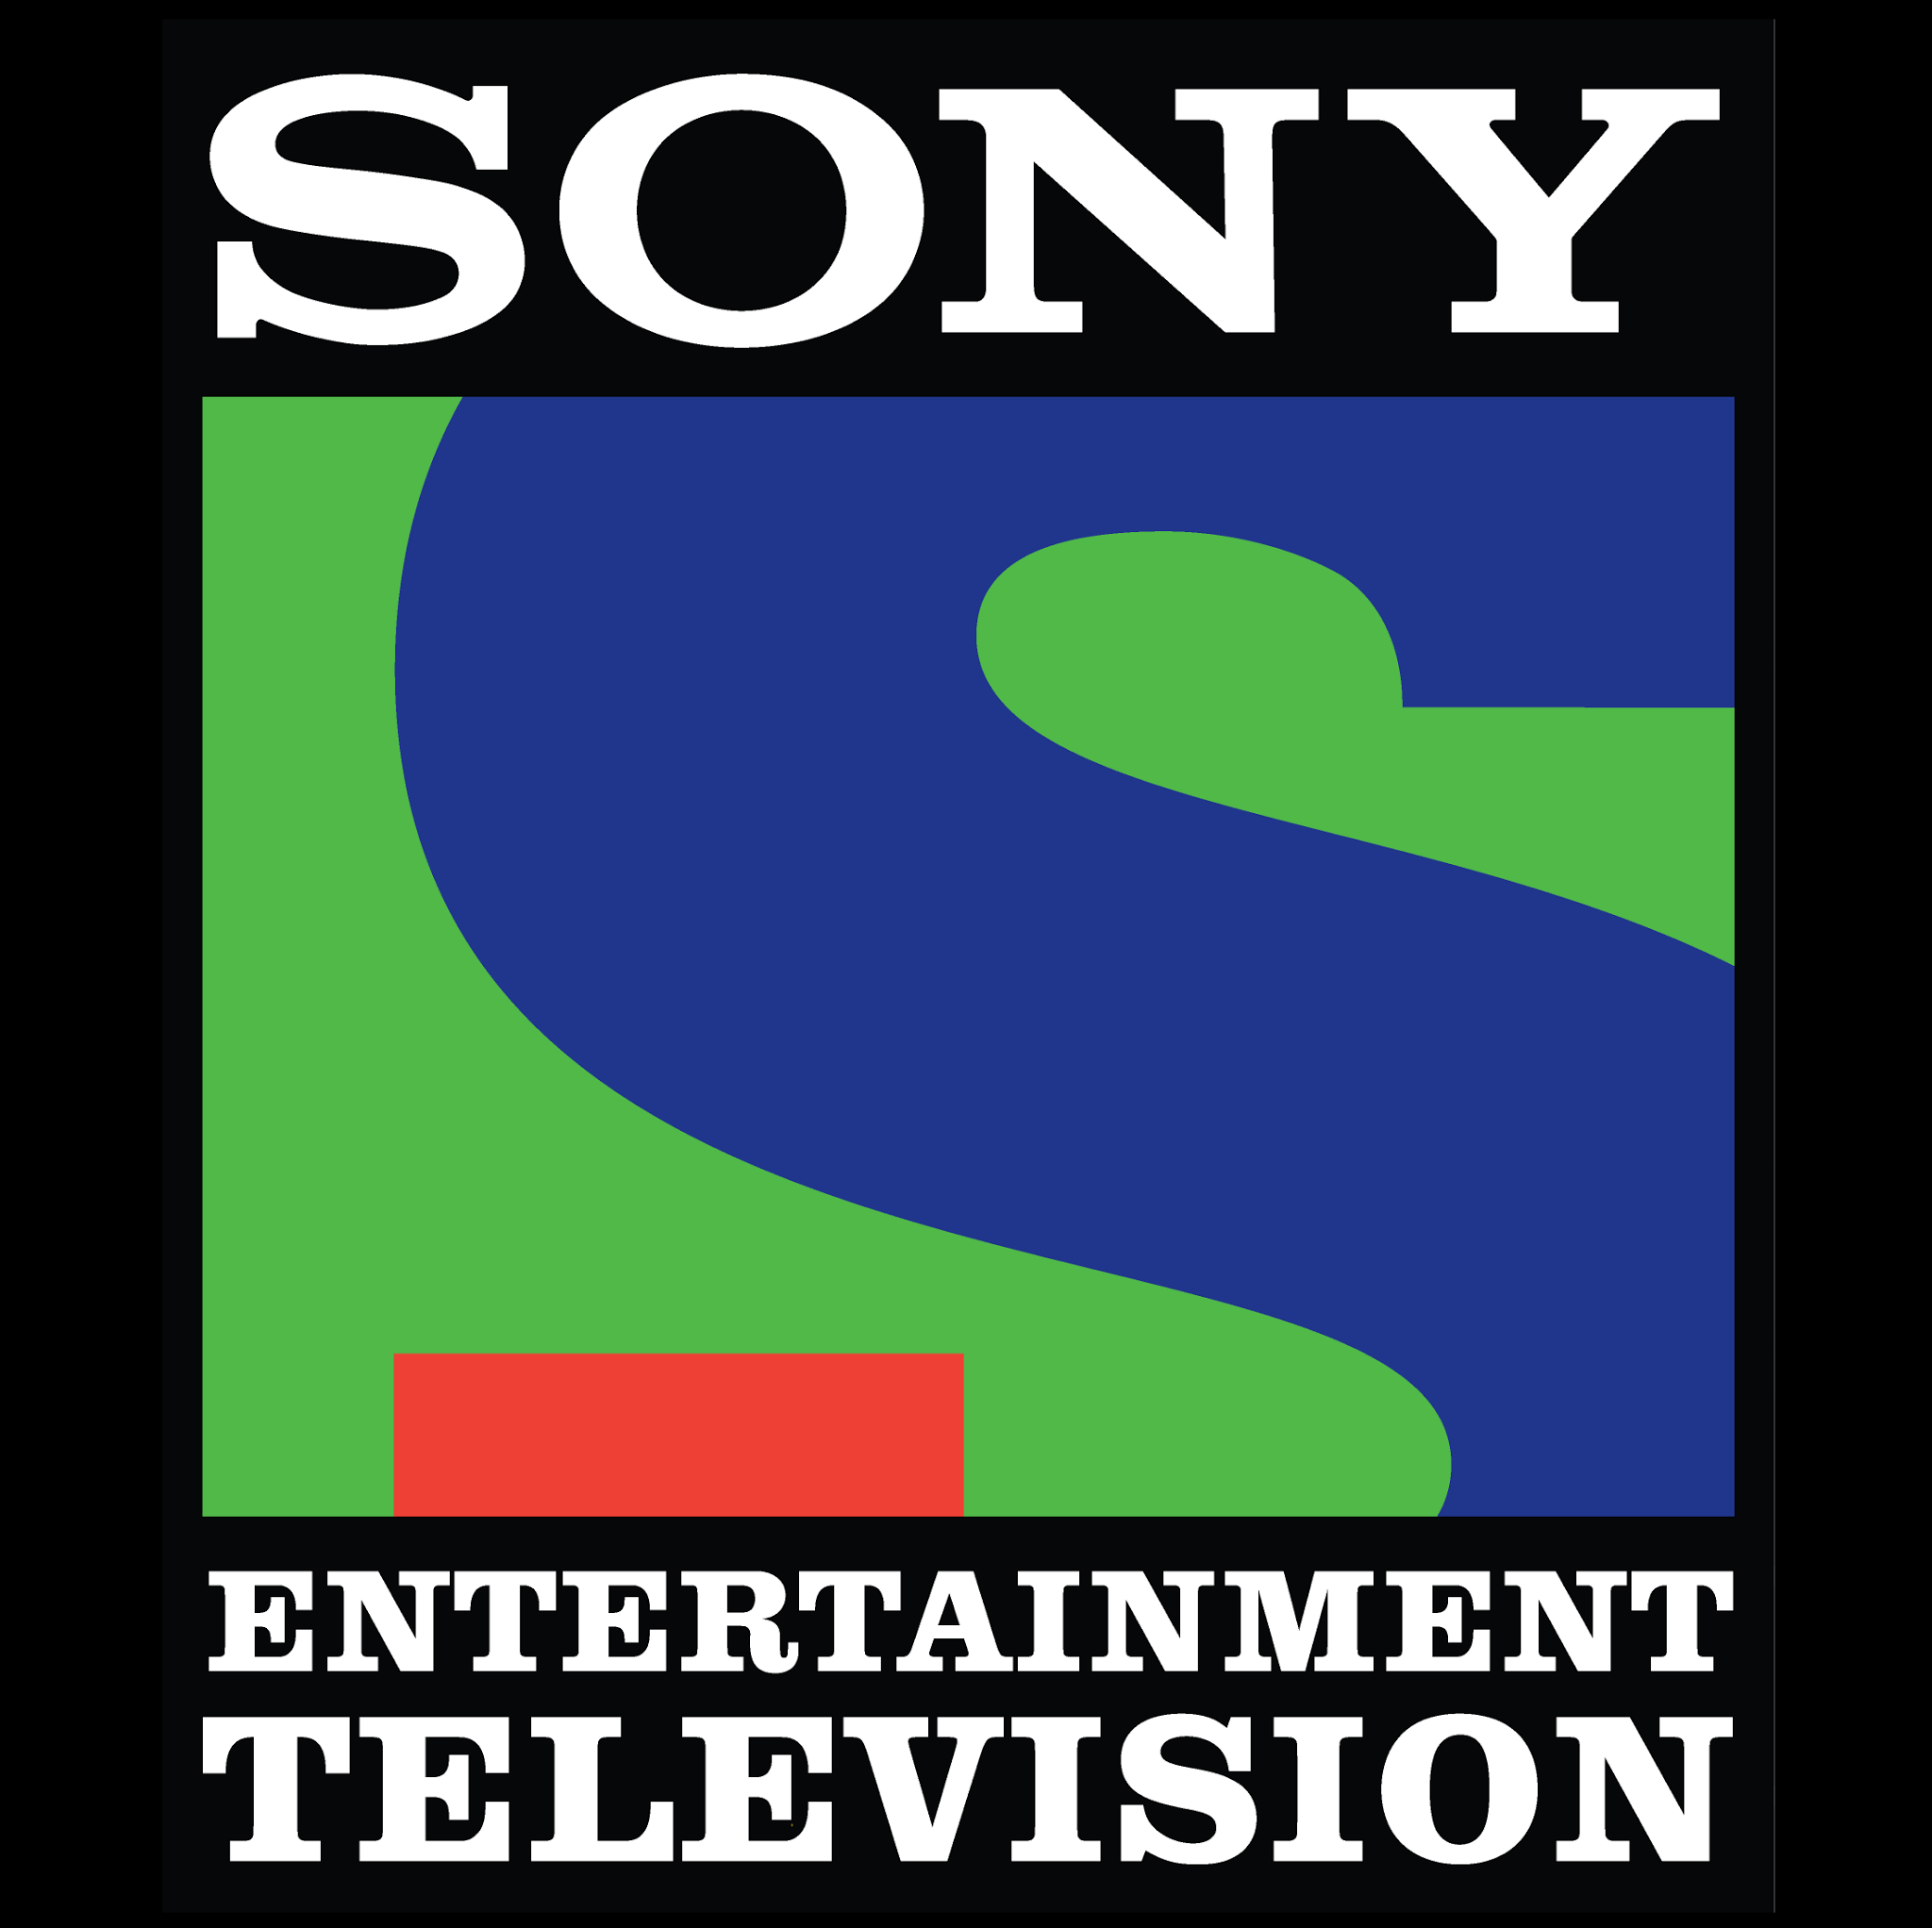 Sony Entertainment TV is a client of Crowd Answers